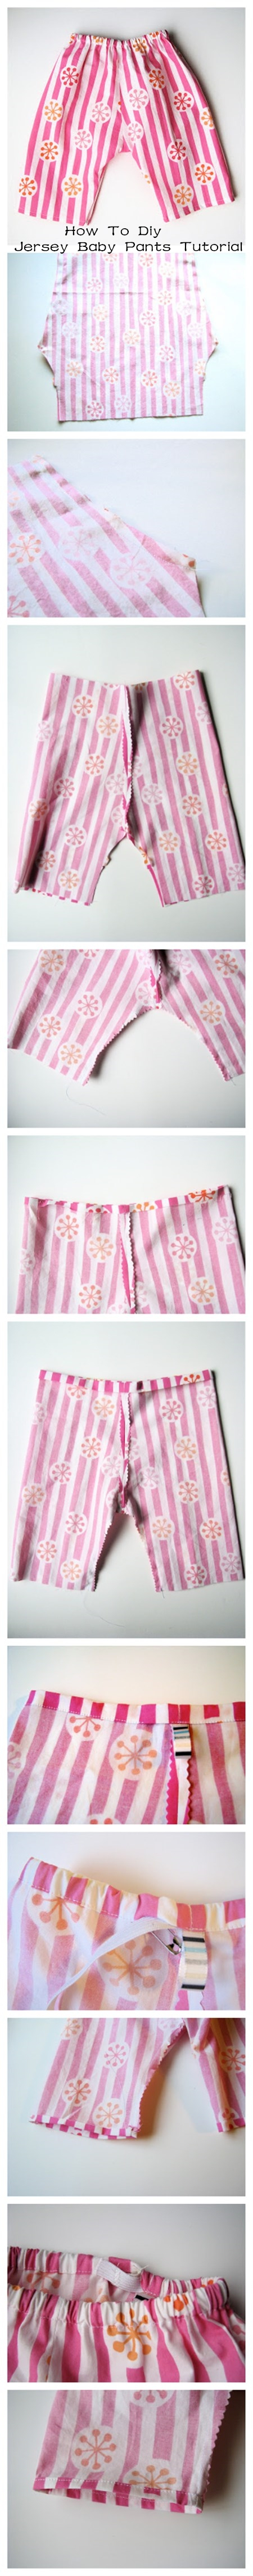 How To Diy Jersey Baby Pants Tutorial